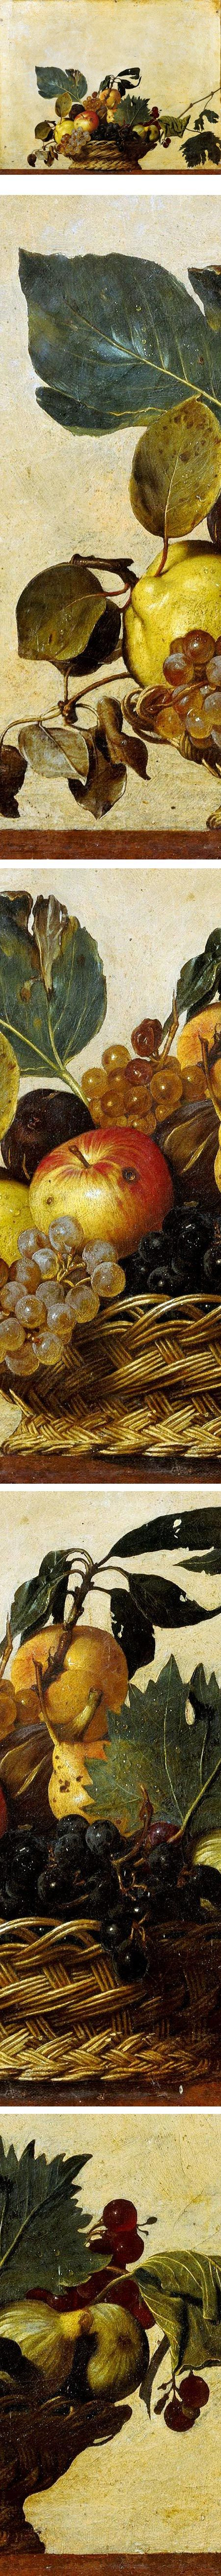 Basket of Fruit, Caravaggio (Michelangelo Merisi da Caravaggio) ... vibration of his colours are ... litherally edible,if I may... :) Sensational !